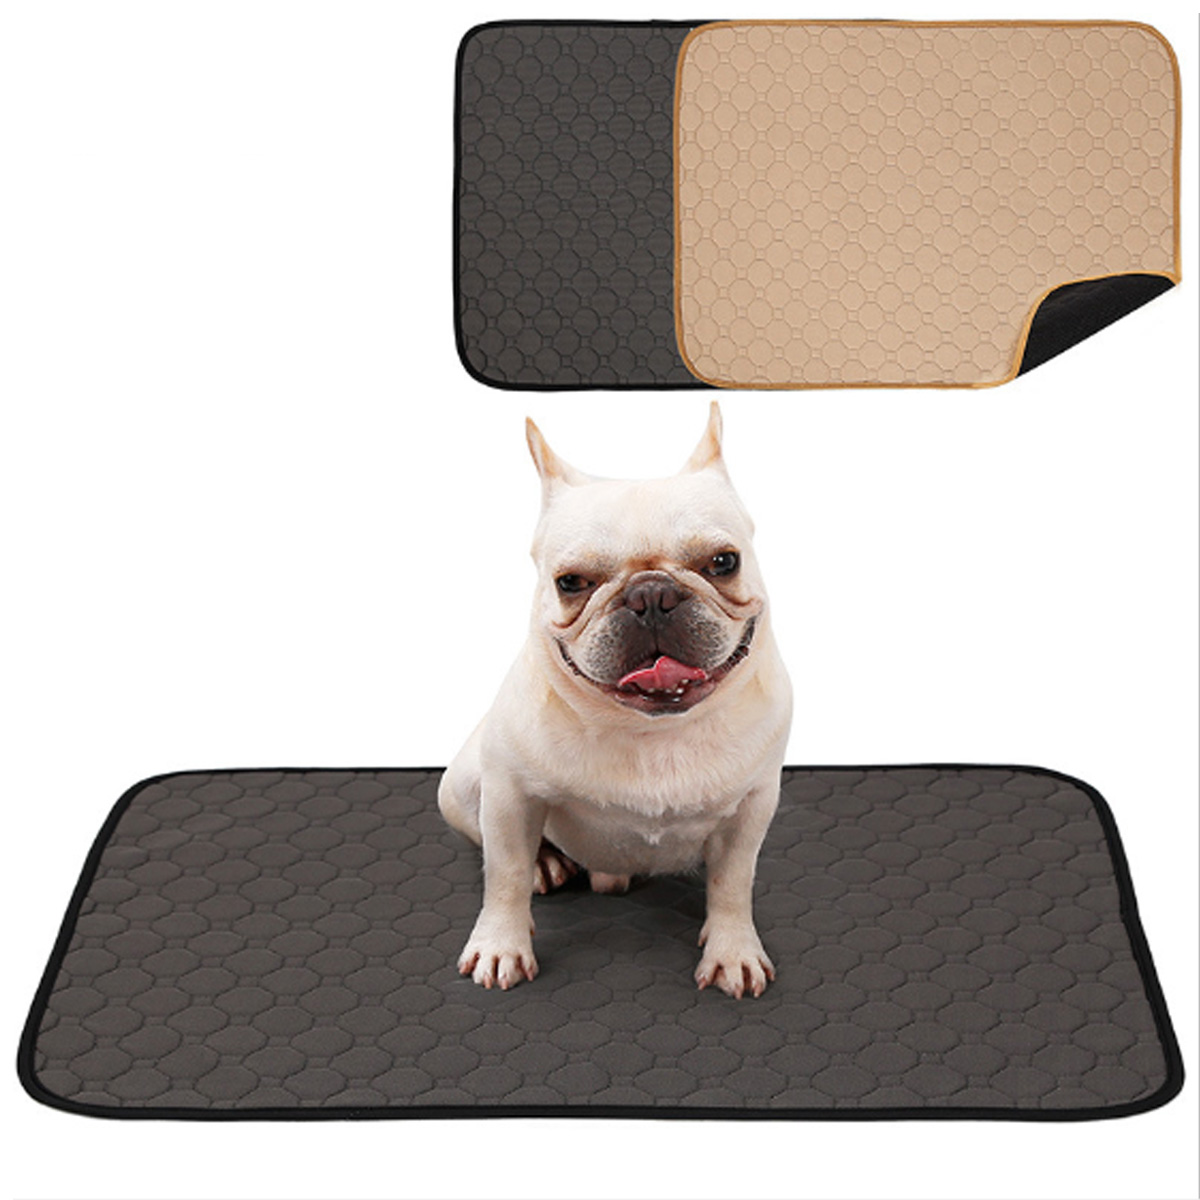 Antibacterial and Super Absorbent Puppy Training Pad for Potty and Pee Training for Dogs 5